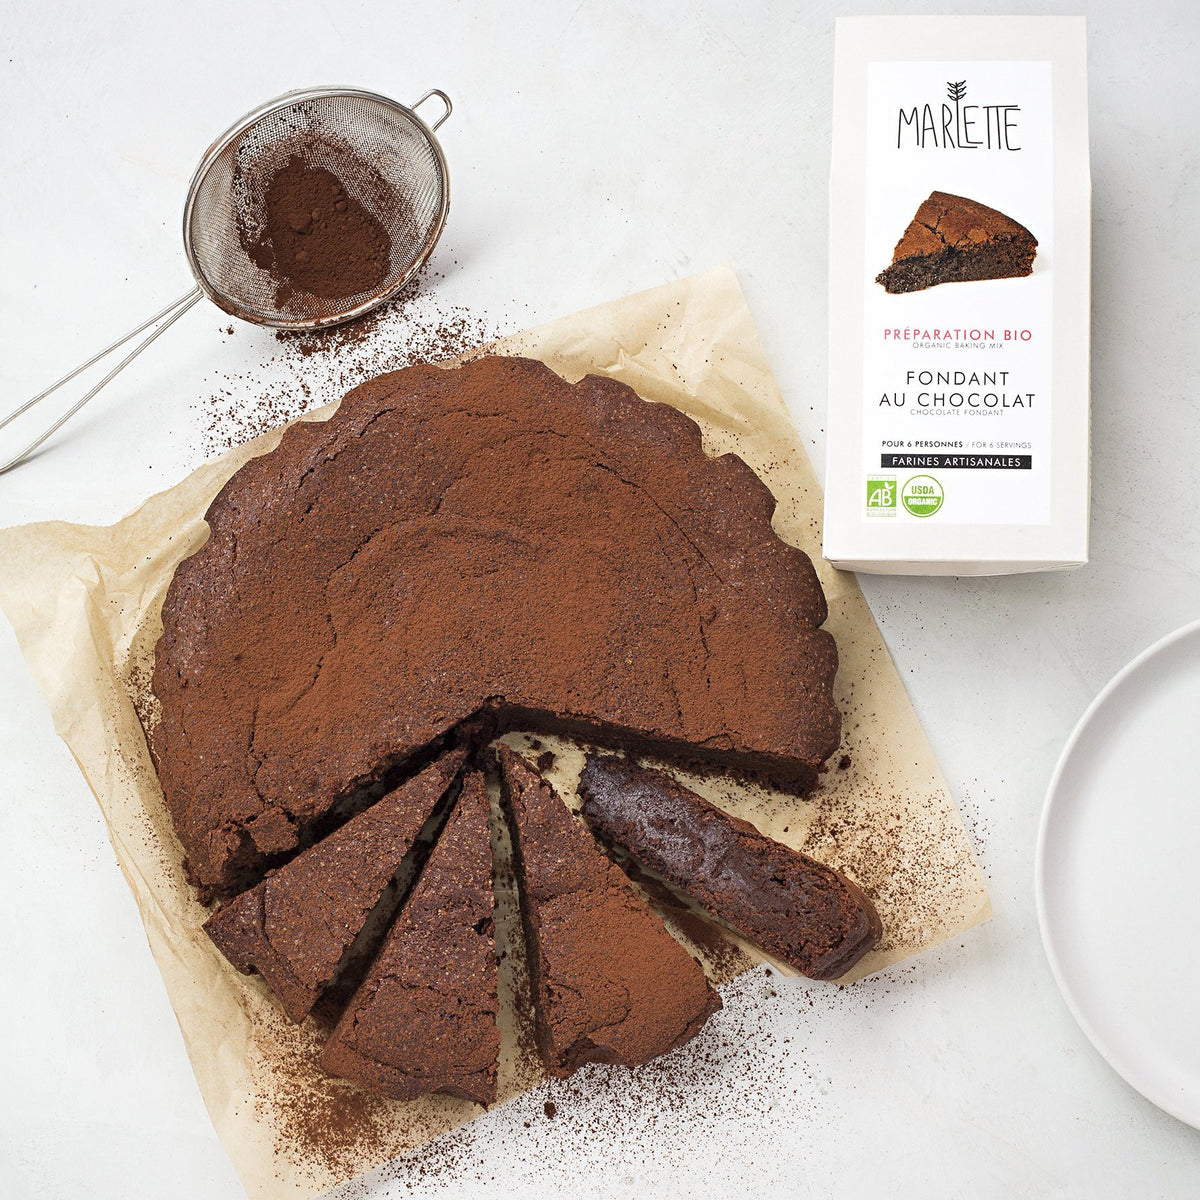 Chocolate fondant - organic baking mix